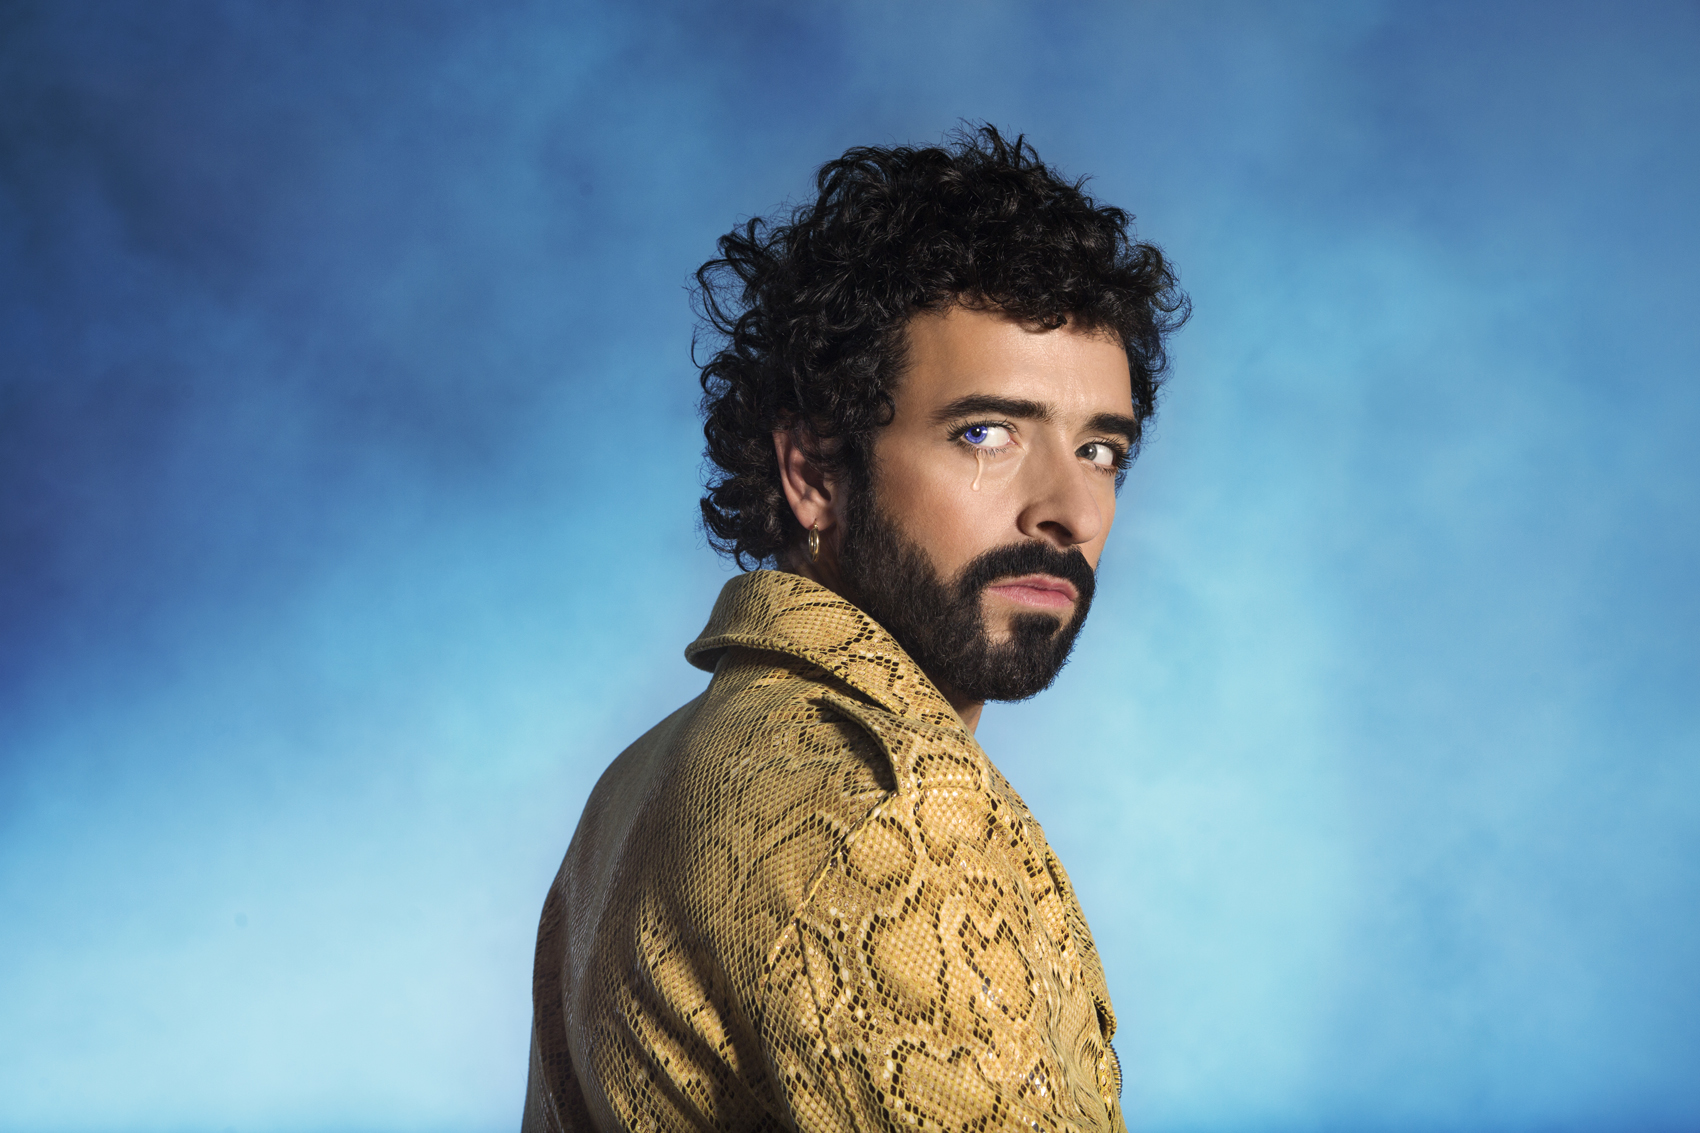 SSION. (Courtesy Kevin Schowengerdt)